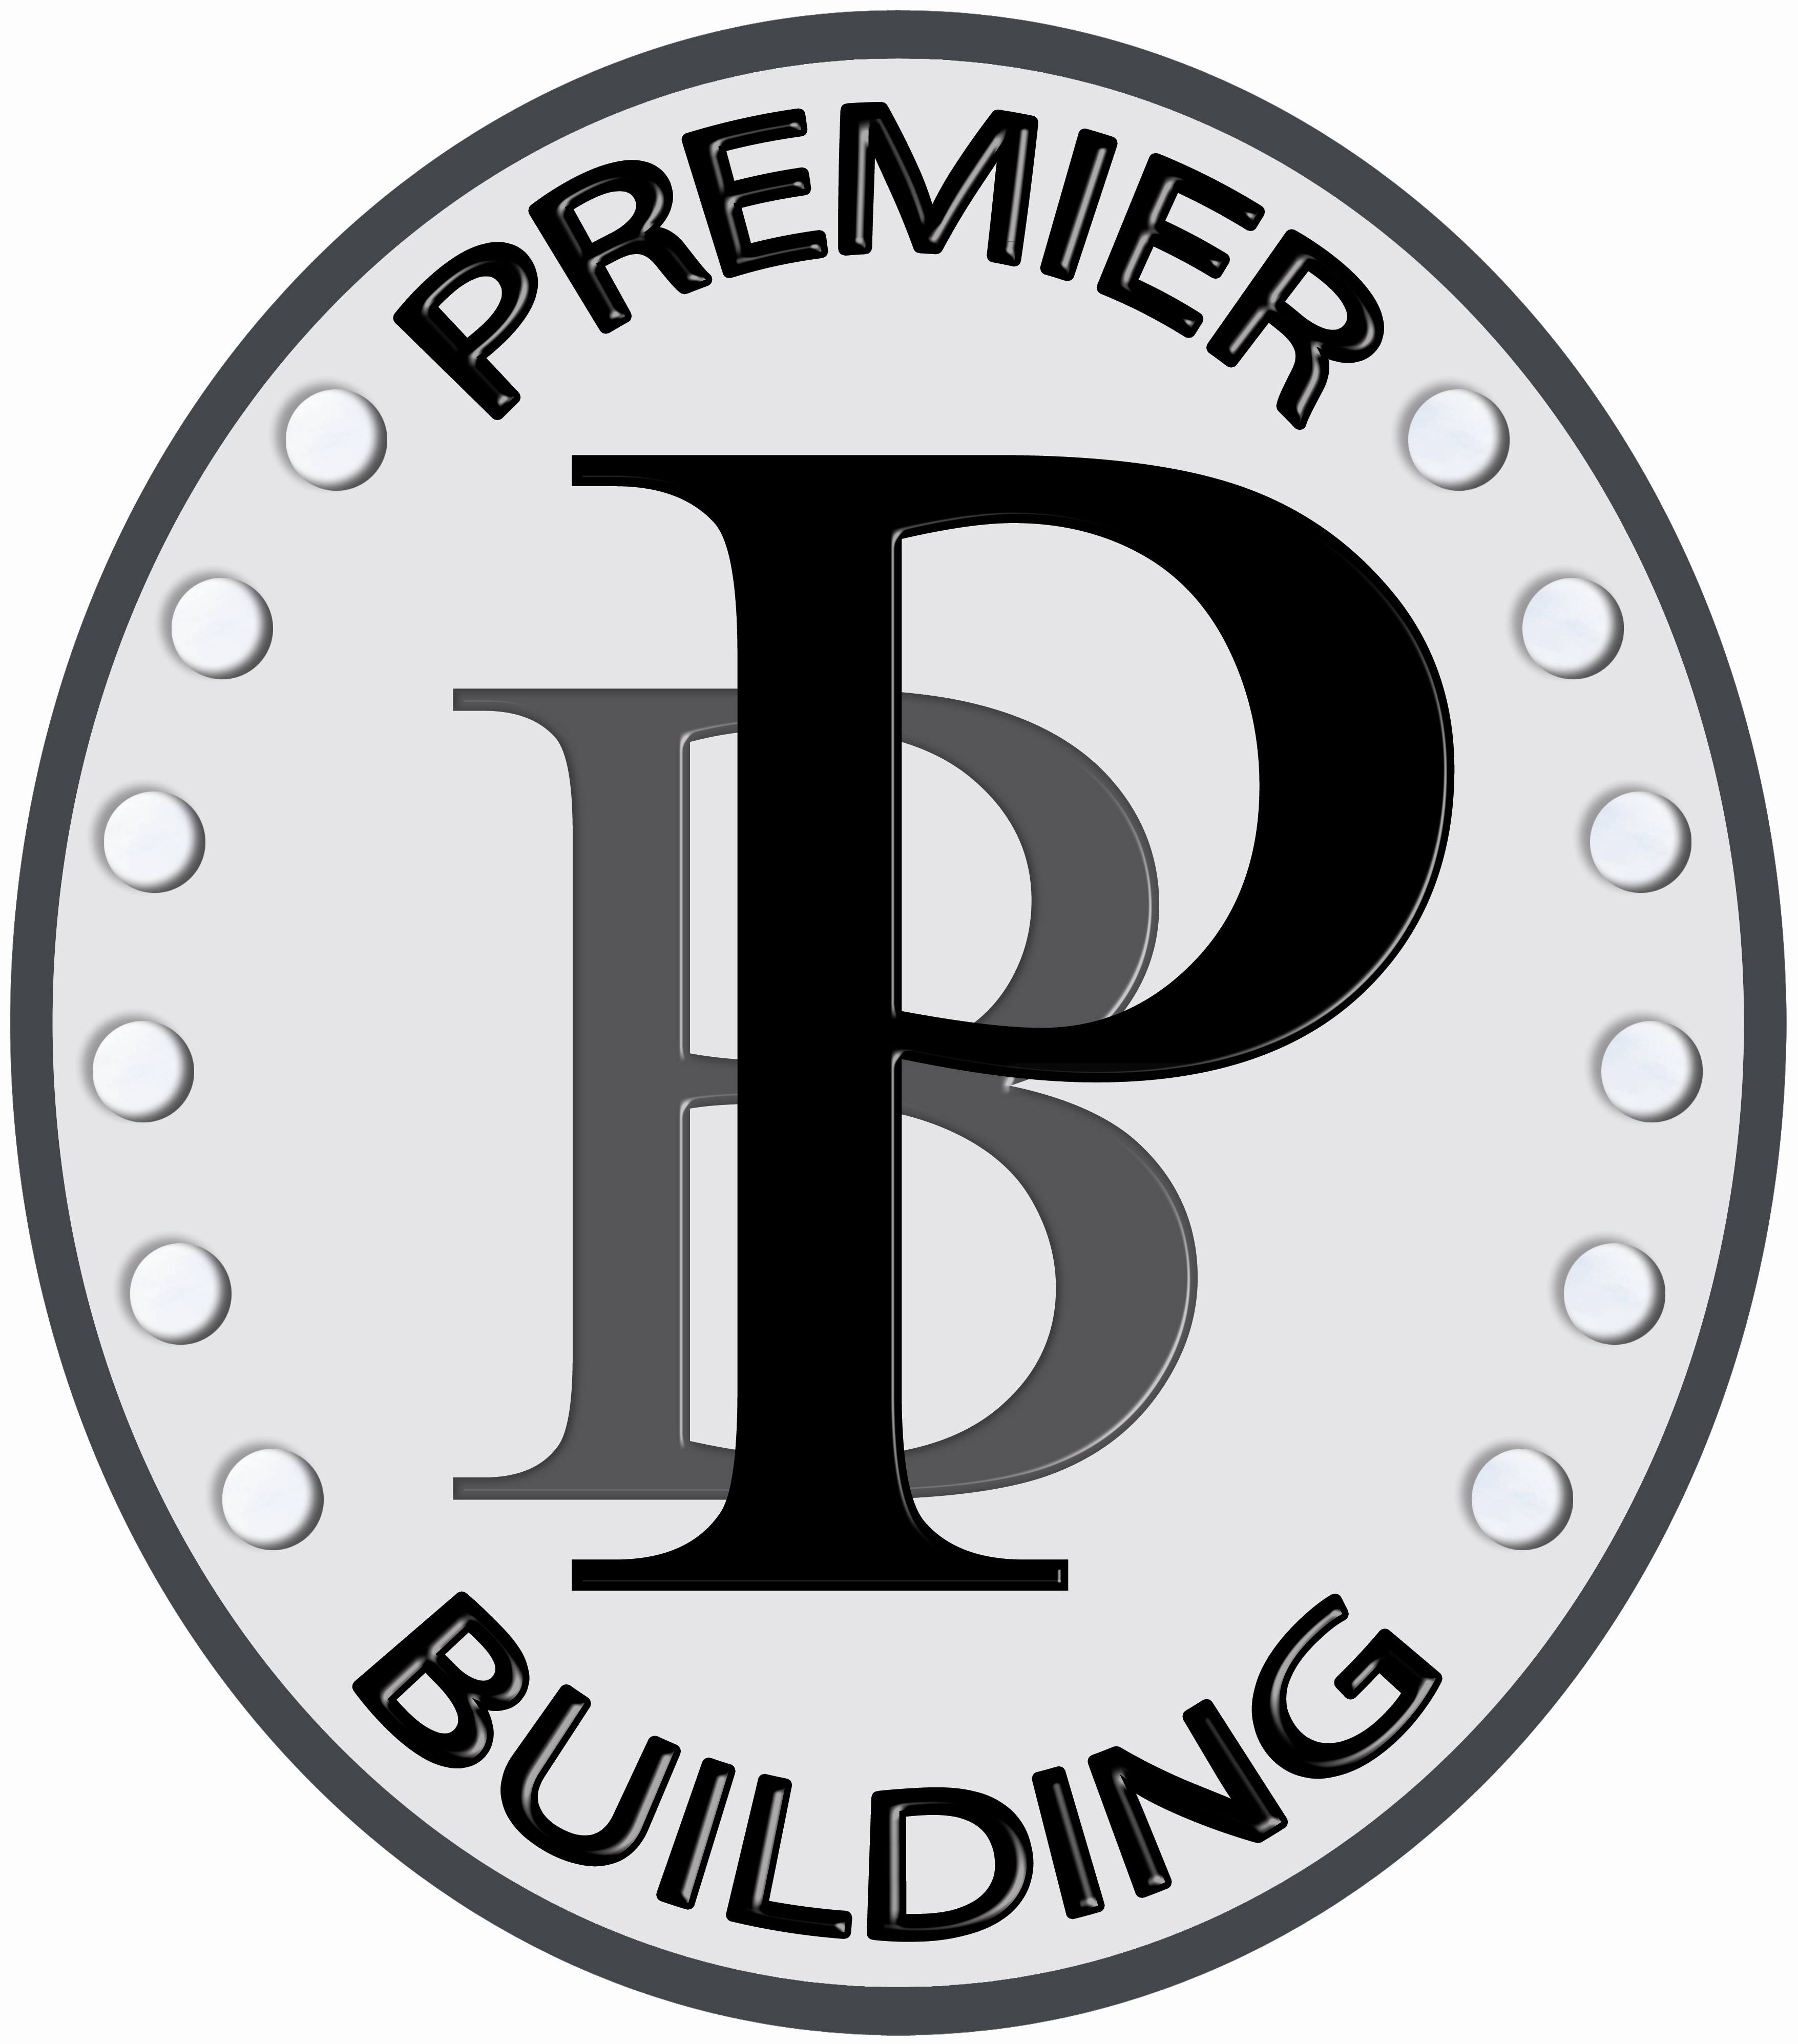 Premier Building & Renovations Corp